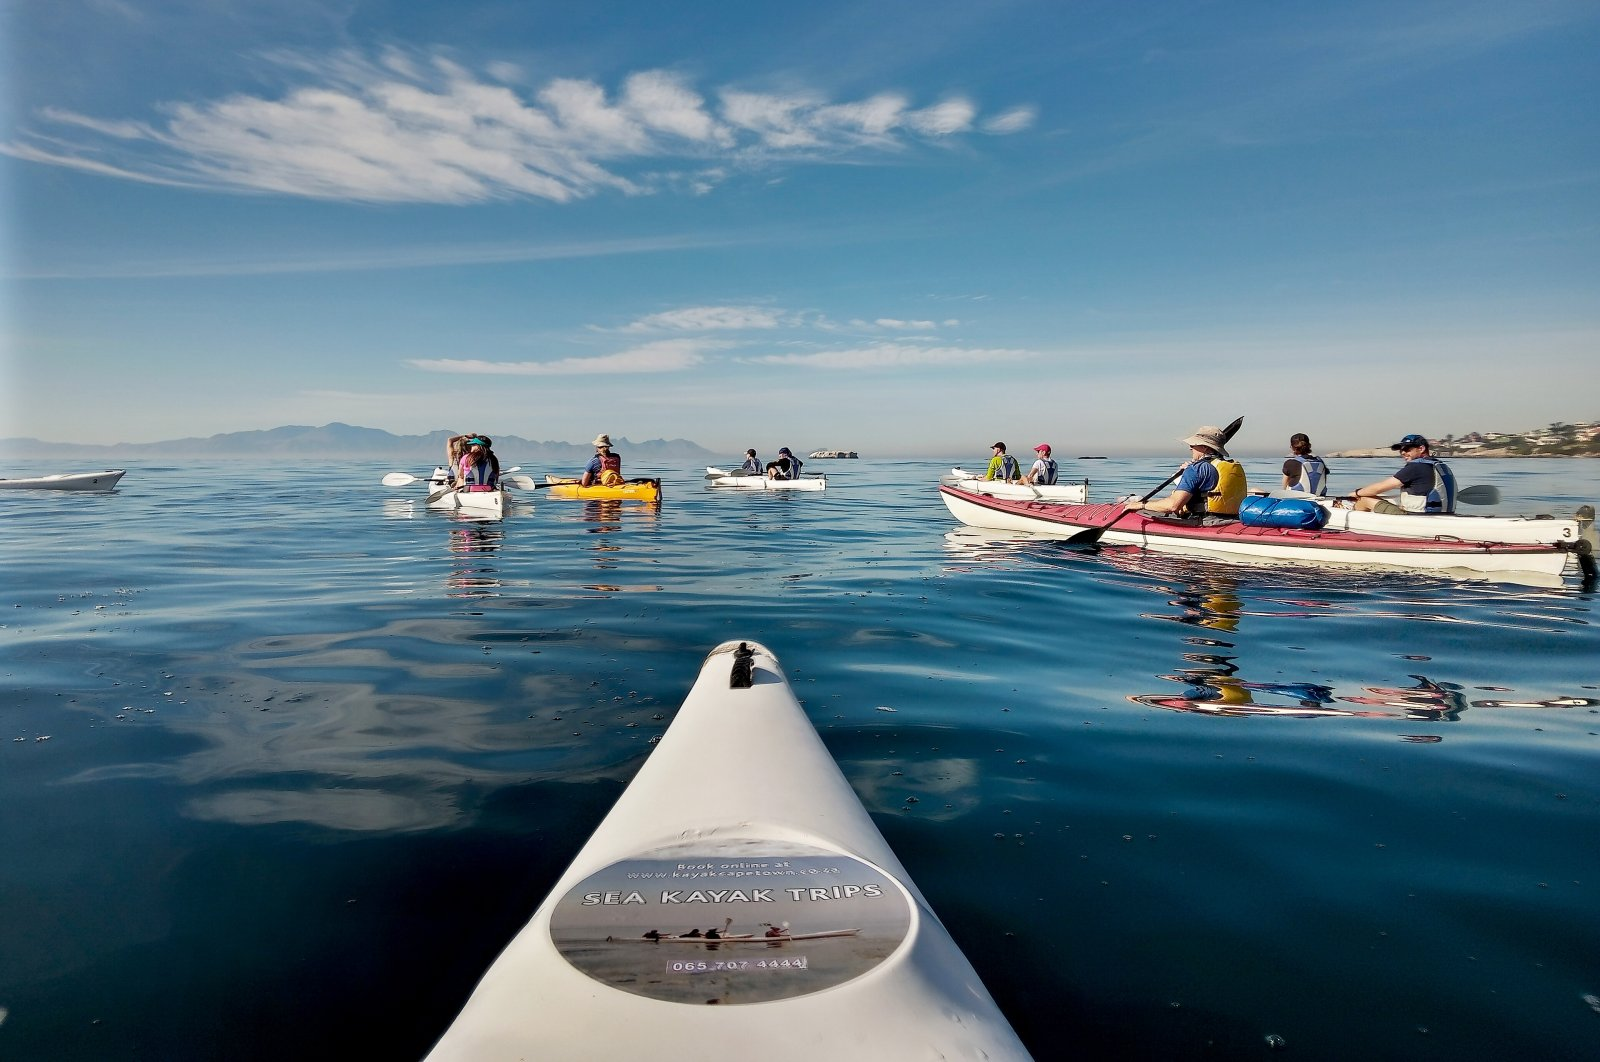 Boat excursion at the Cape: In two-person kayaks you head out into a smooth sea. (Christian Selz/dpa Photo)